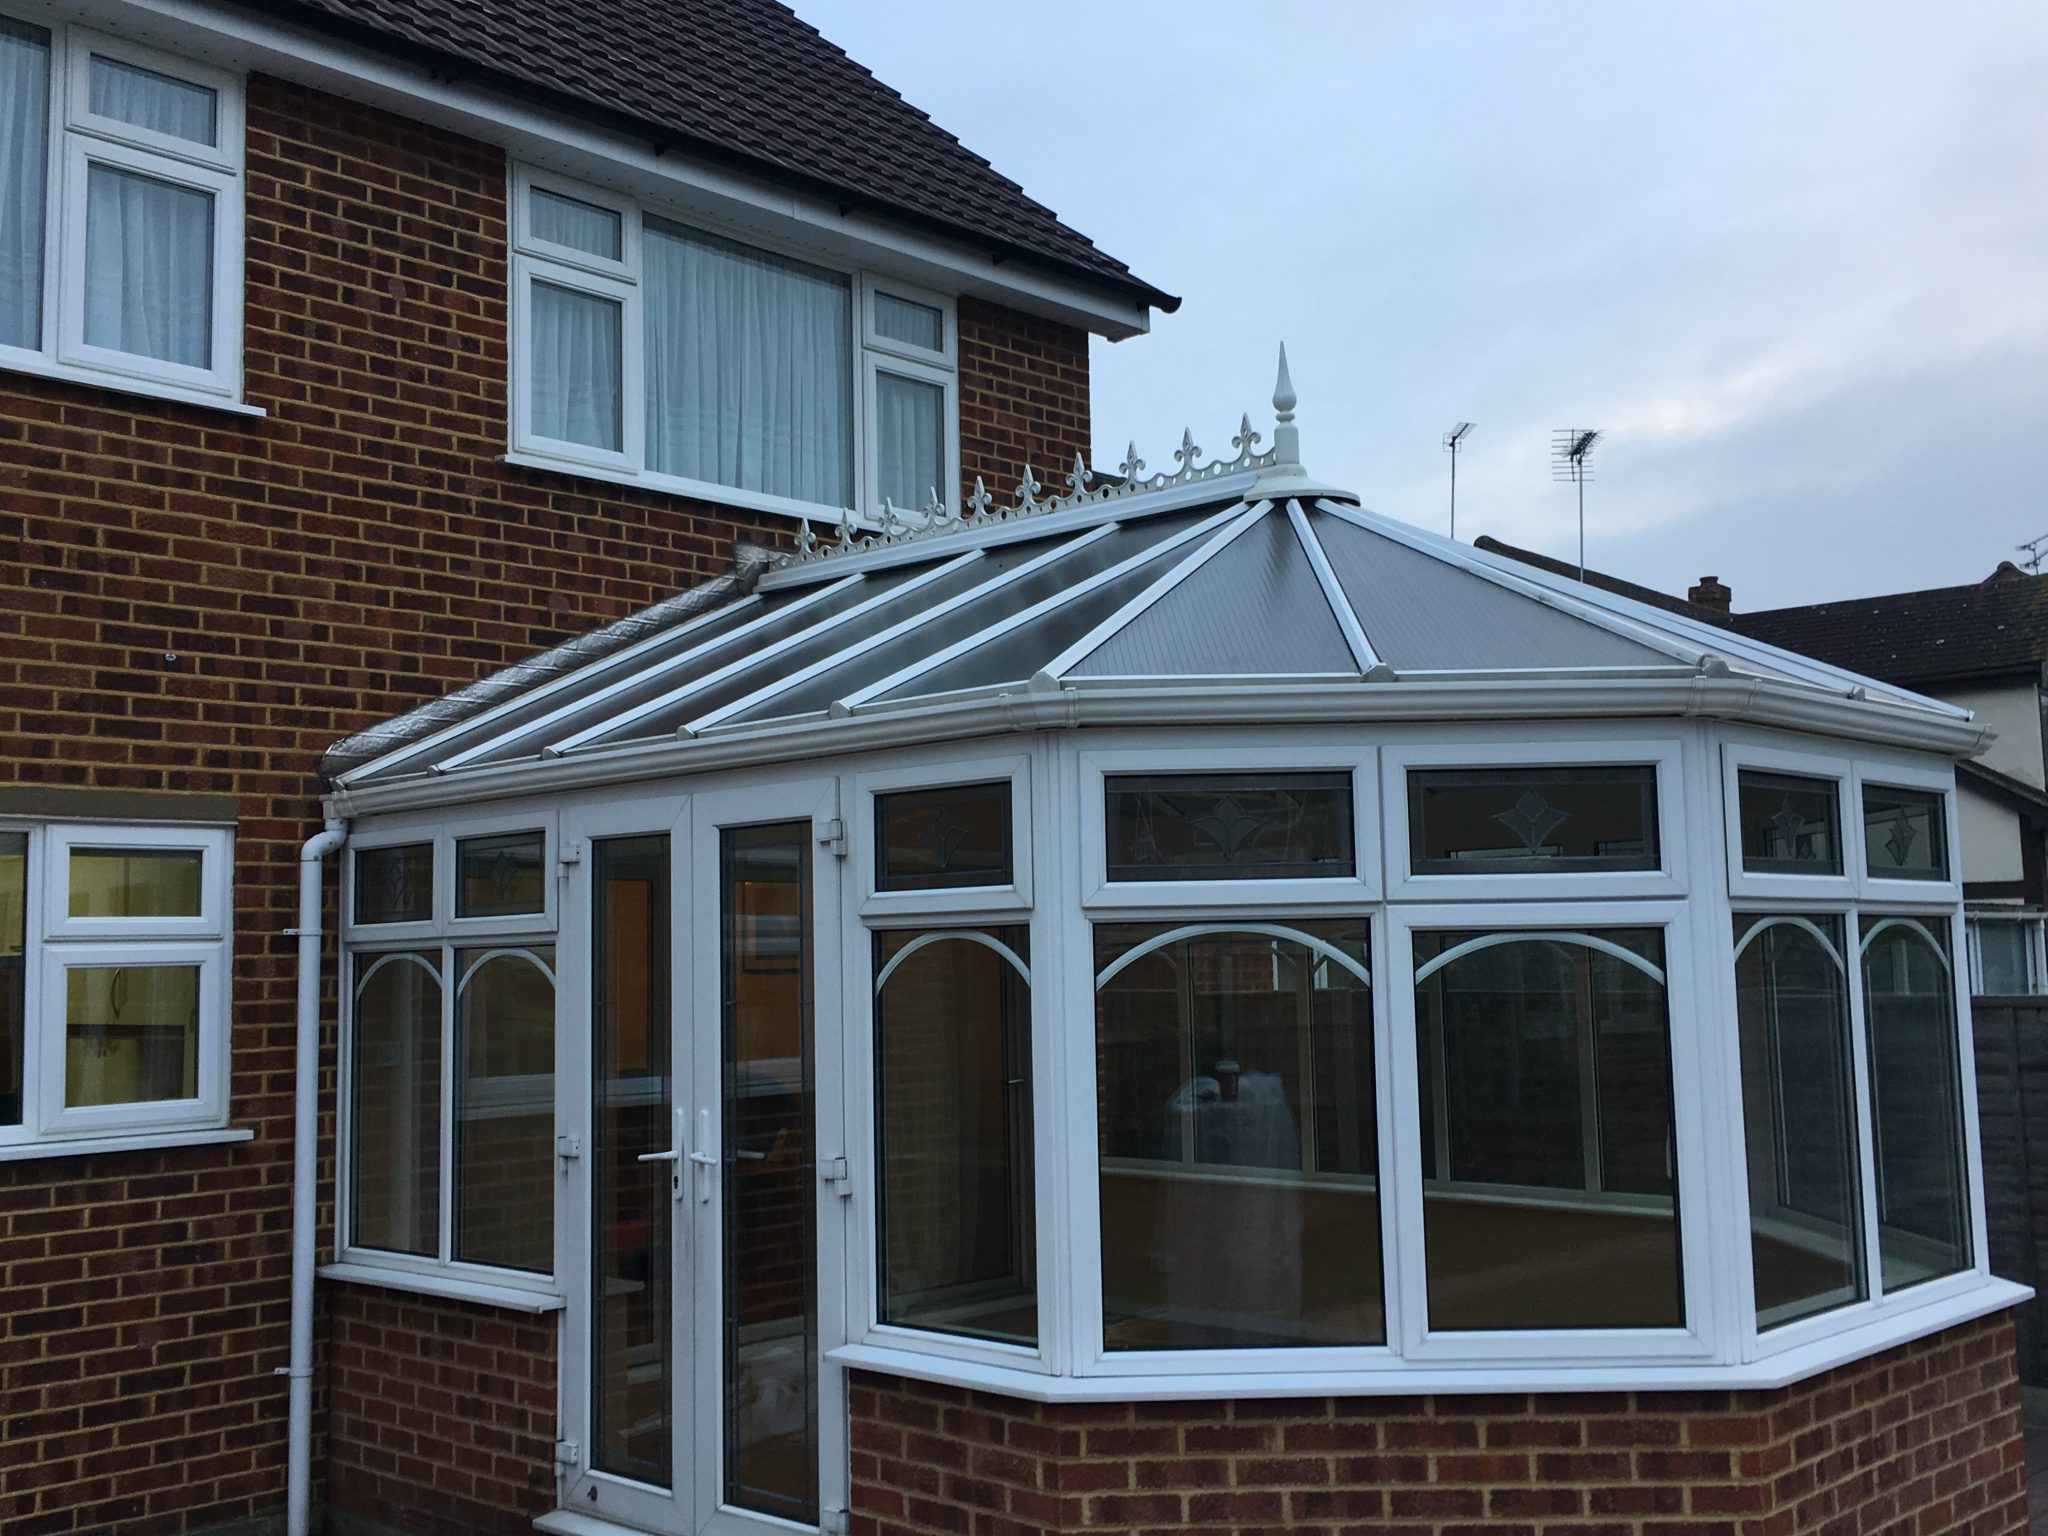 Conservatory-image2-2